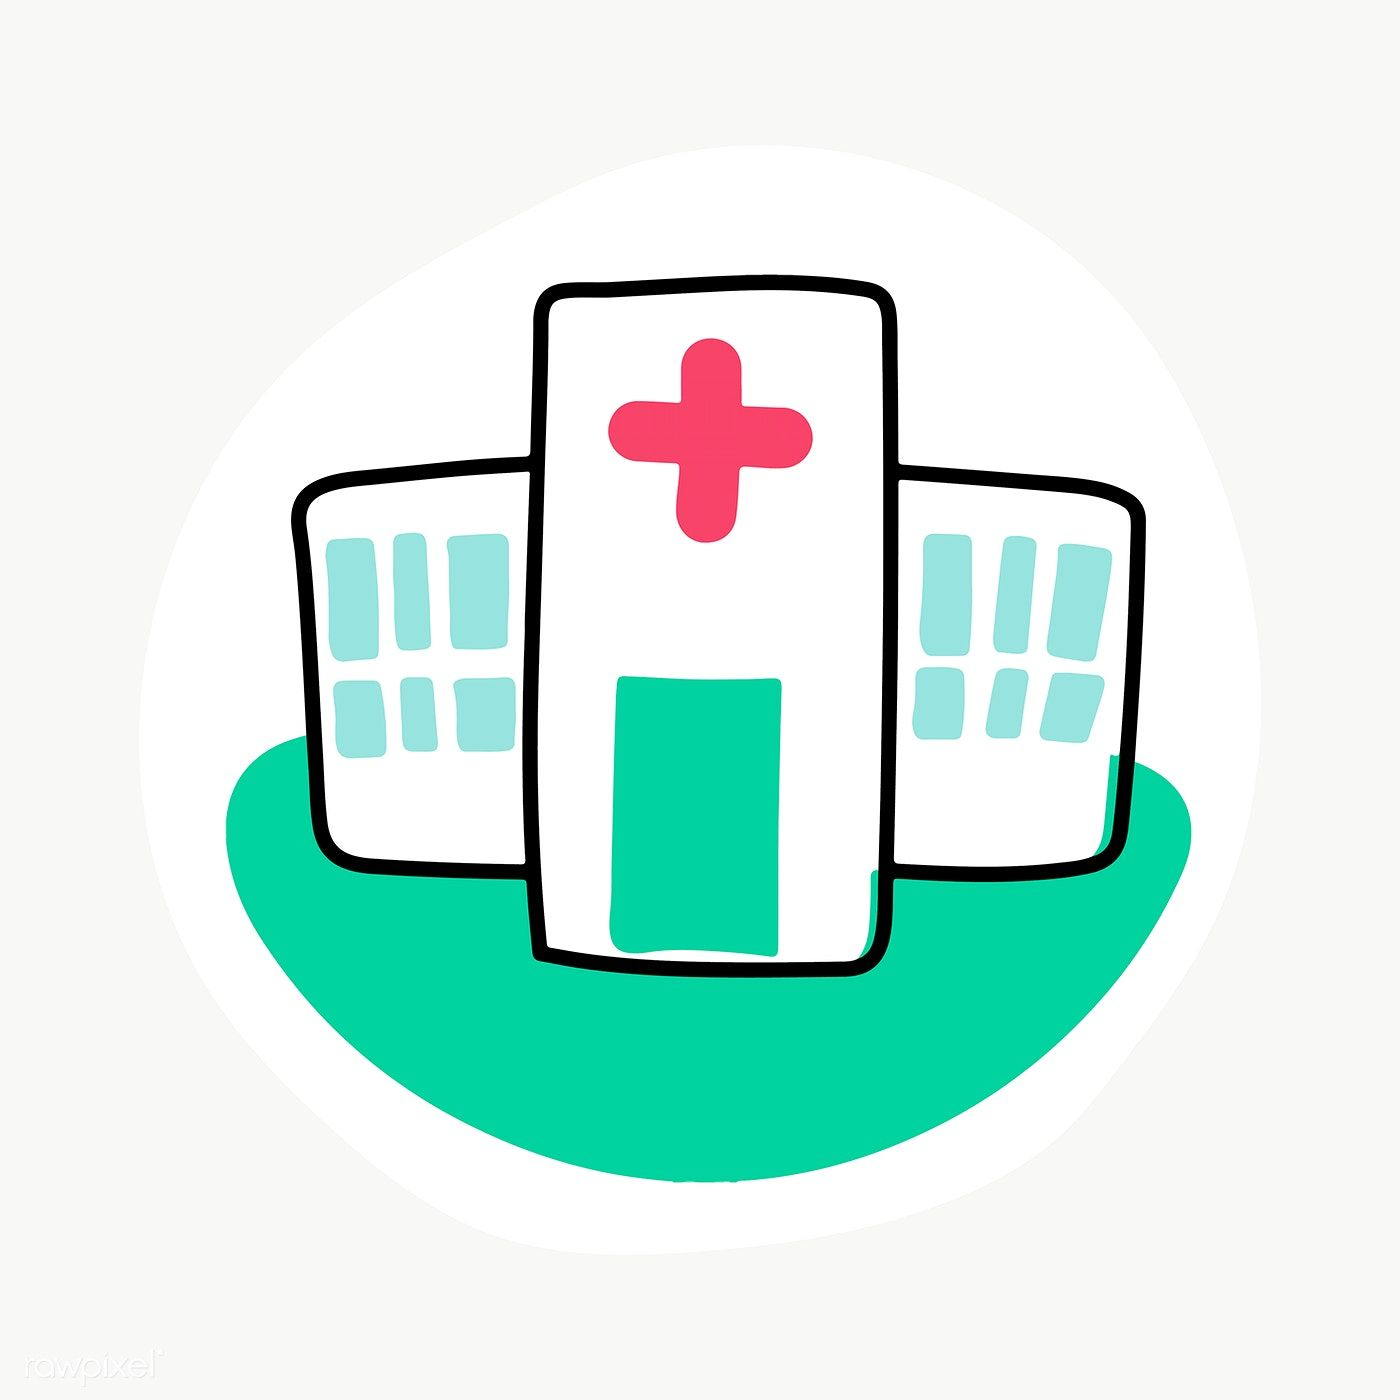 50 Free Vector Icons Of Hospital Designed By Freepik Hospital Icon Hospital Design Hospital